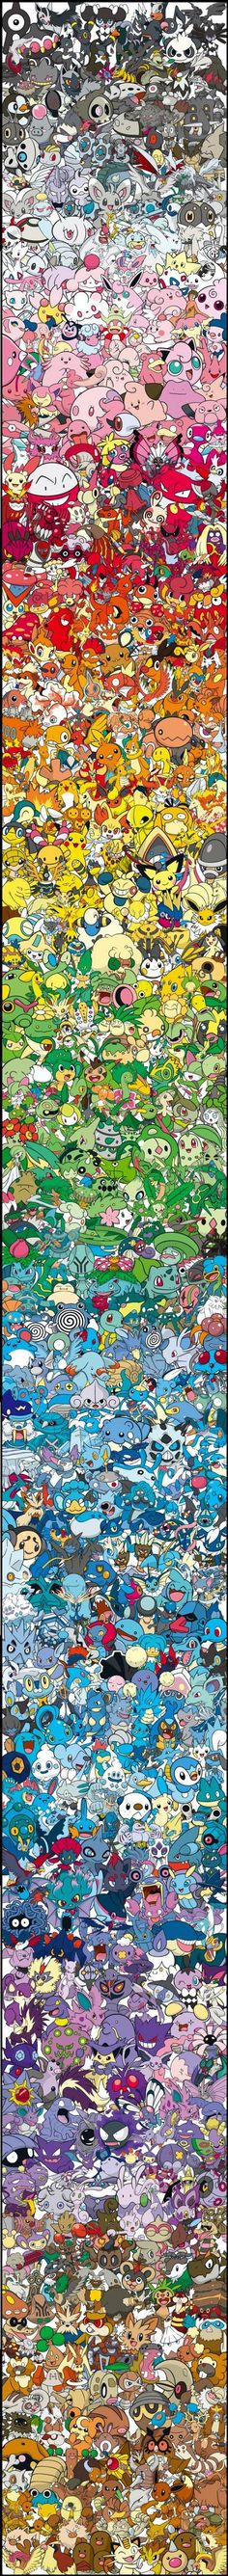 Every single Pokémon organised by colour, via:- http://www.dorkly.com/post/66045/every-single-pokemon-arranged-by-color?utm_source=facebook.com&utm_